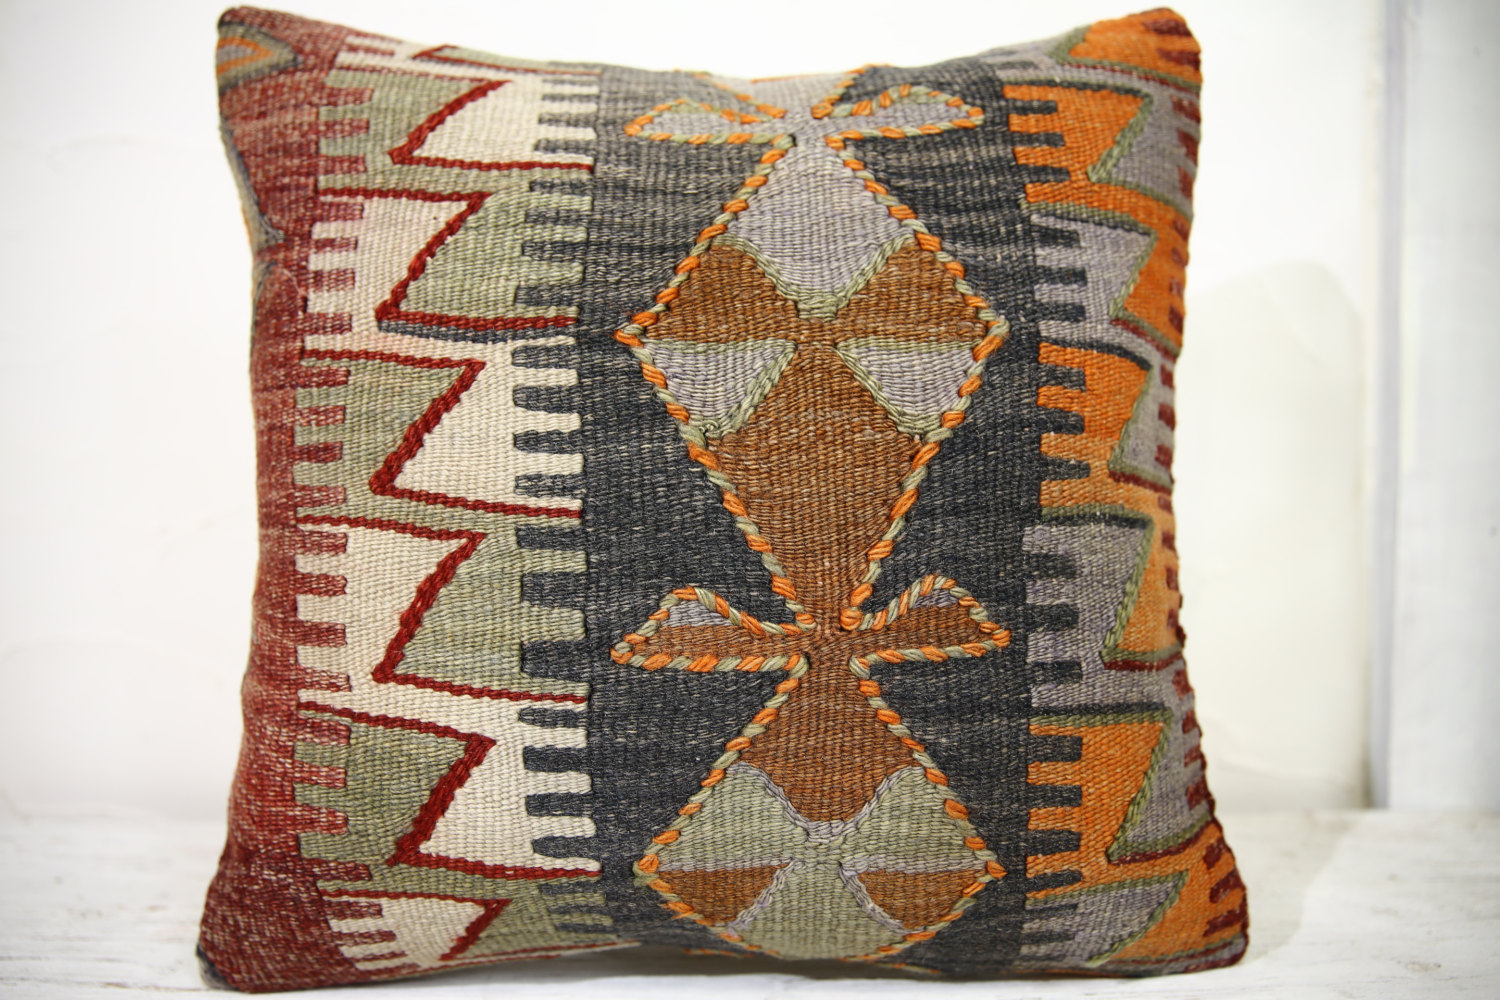 Kilim Pillows |18x18| Decorative Pillows | 1012 | Accent Pillows, Kilim cushion